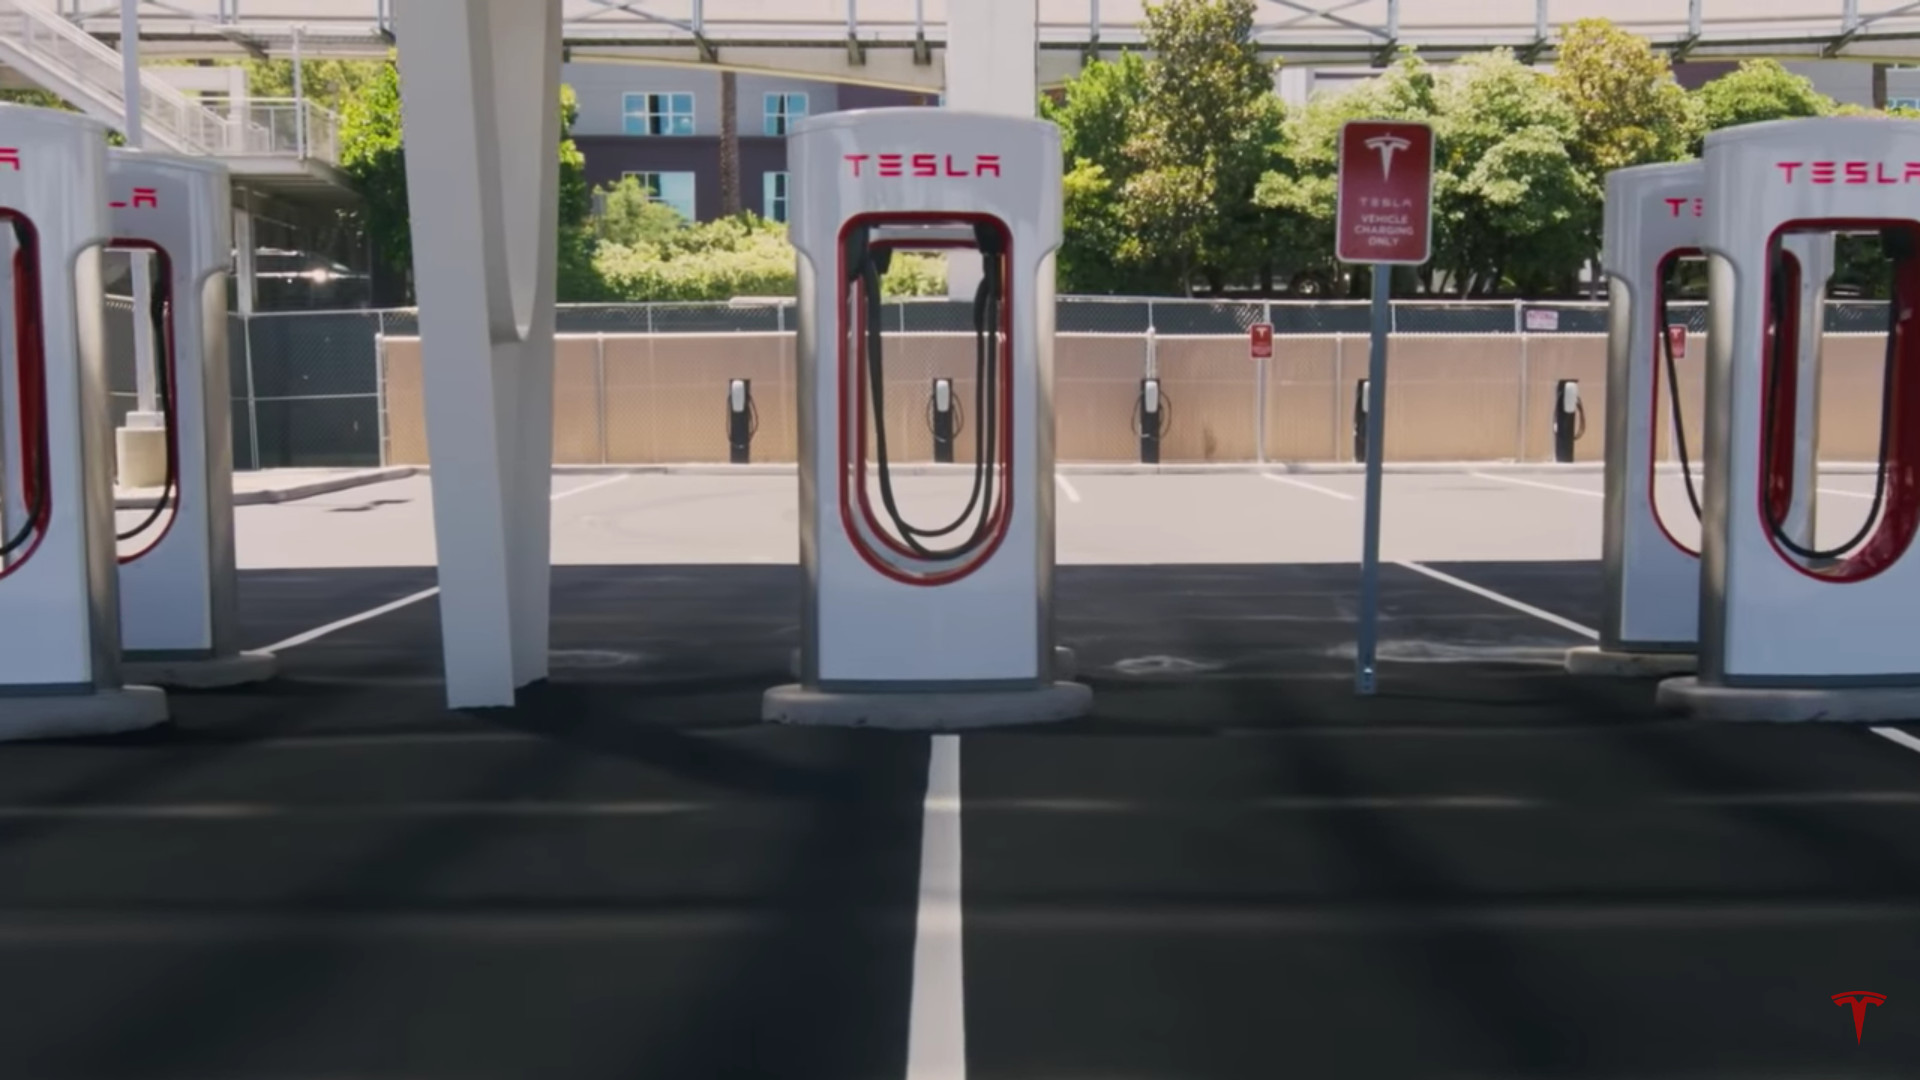 Tesla V3 Superchargers, BMW CEO, Toyota batteries, EPA delay